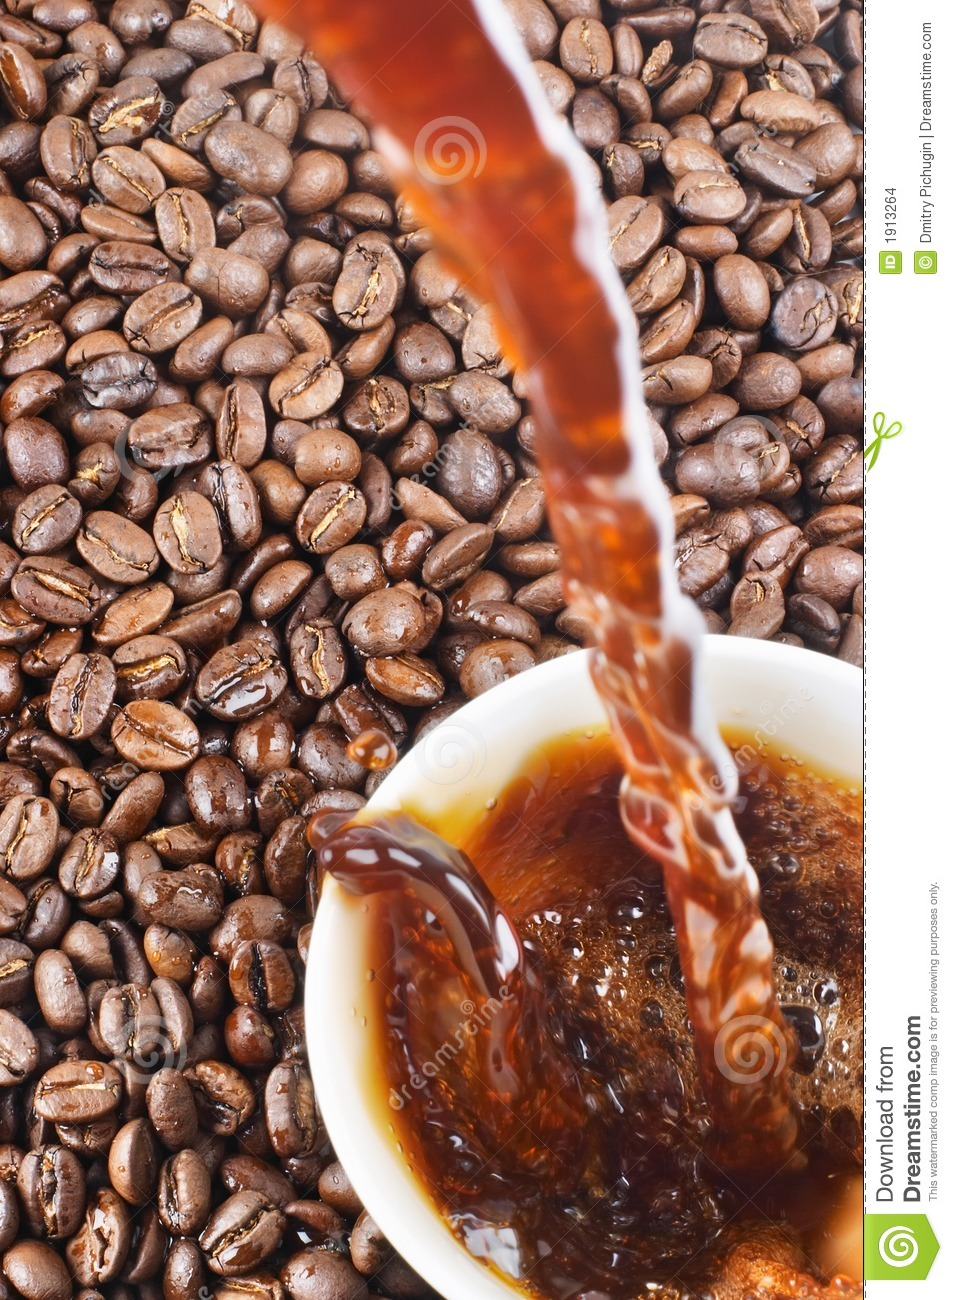 Pouring coffee and coffee-beans